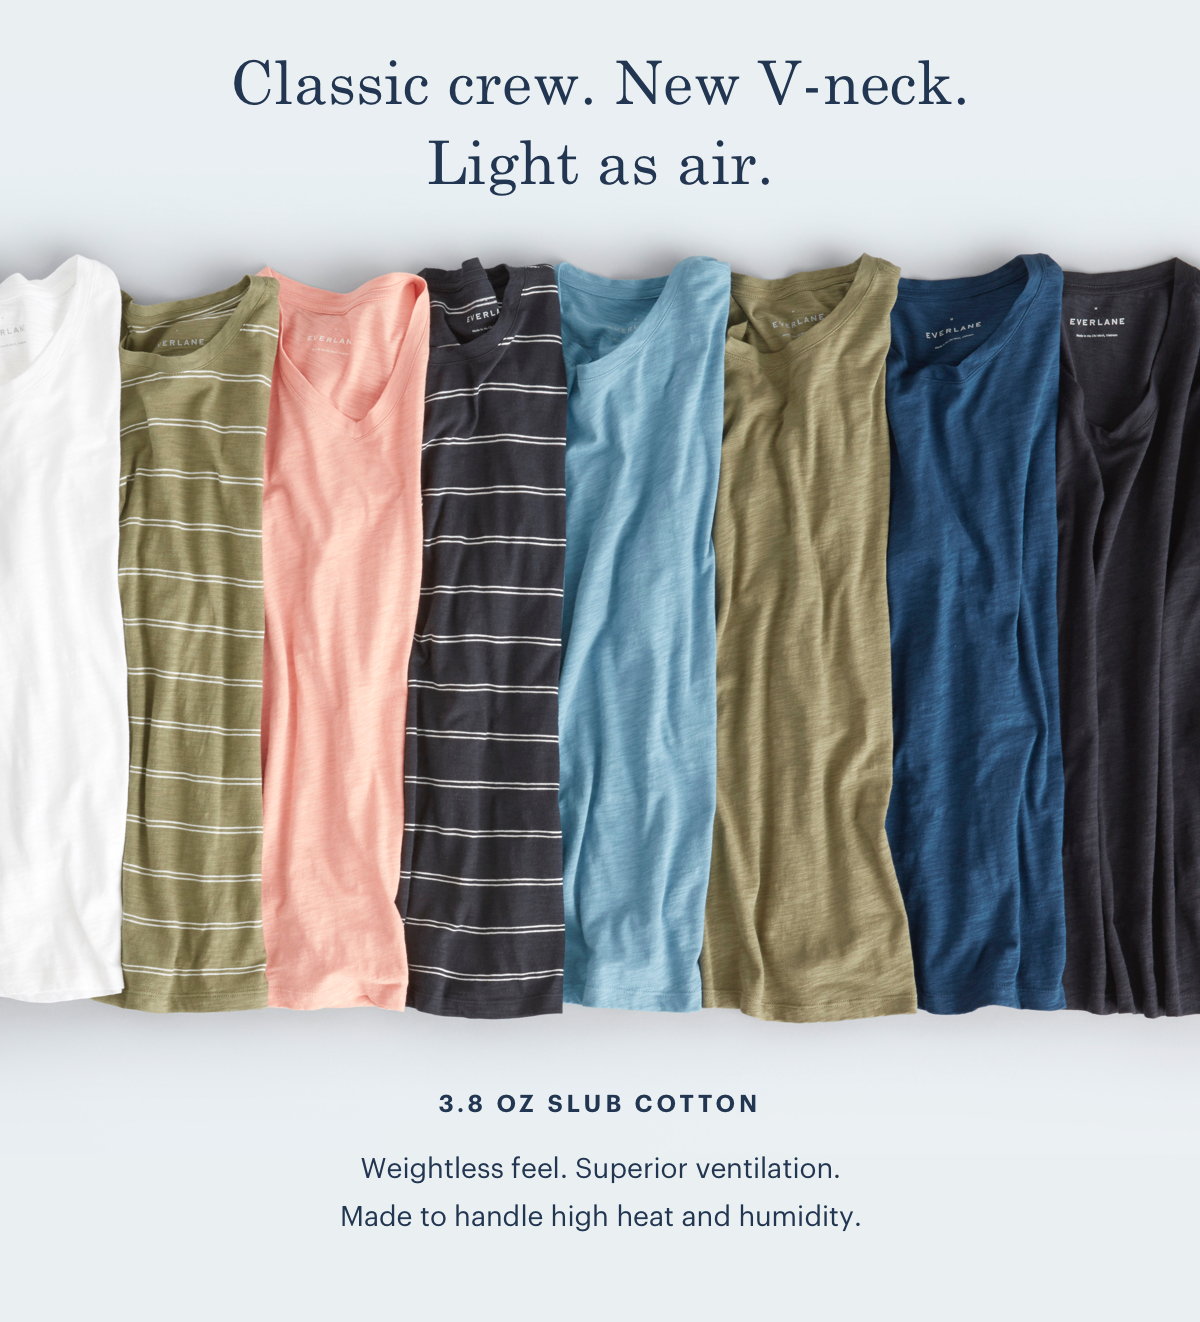 Classic crew. New V-neck. Light as air.